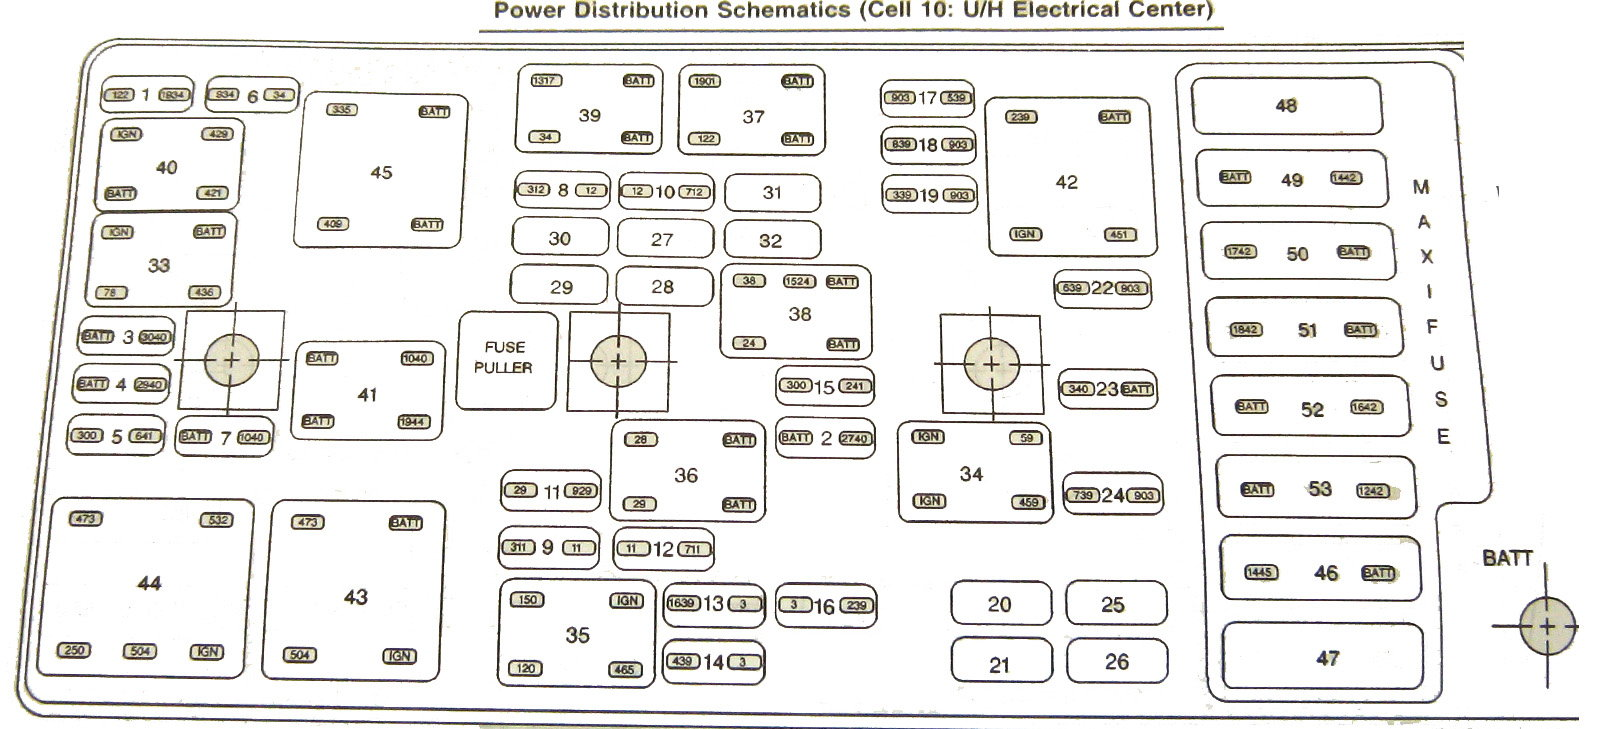 [SCHEMATICS_4HG]  C6 fuse box relay position - CorvetteForum - Chevrolet Corvette Forum  Discussion | 2008 Corvette Fuse Box Location |  | Corvette Forum